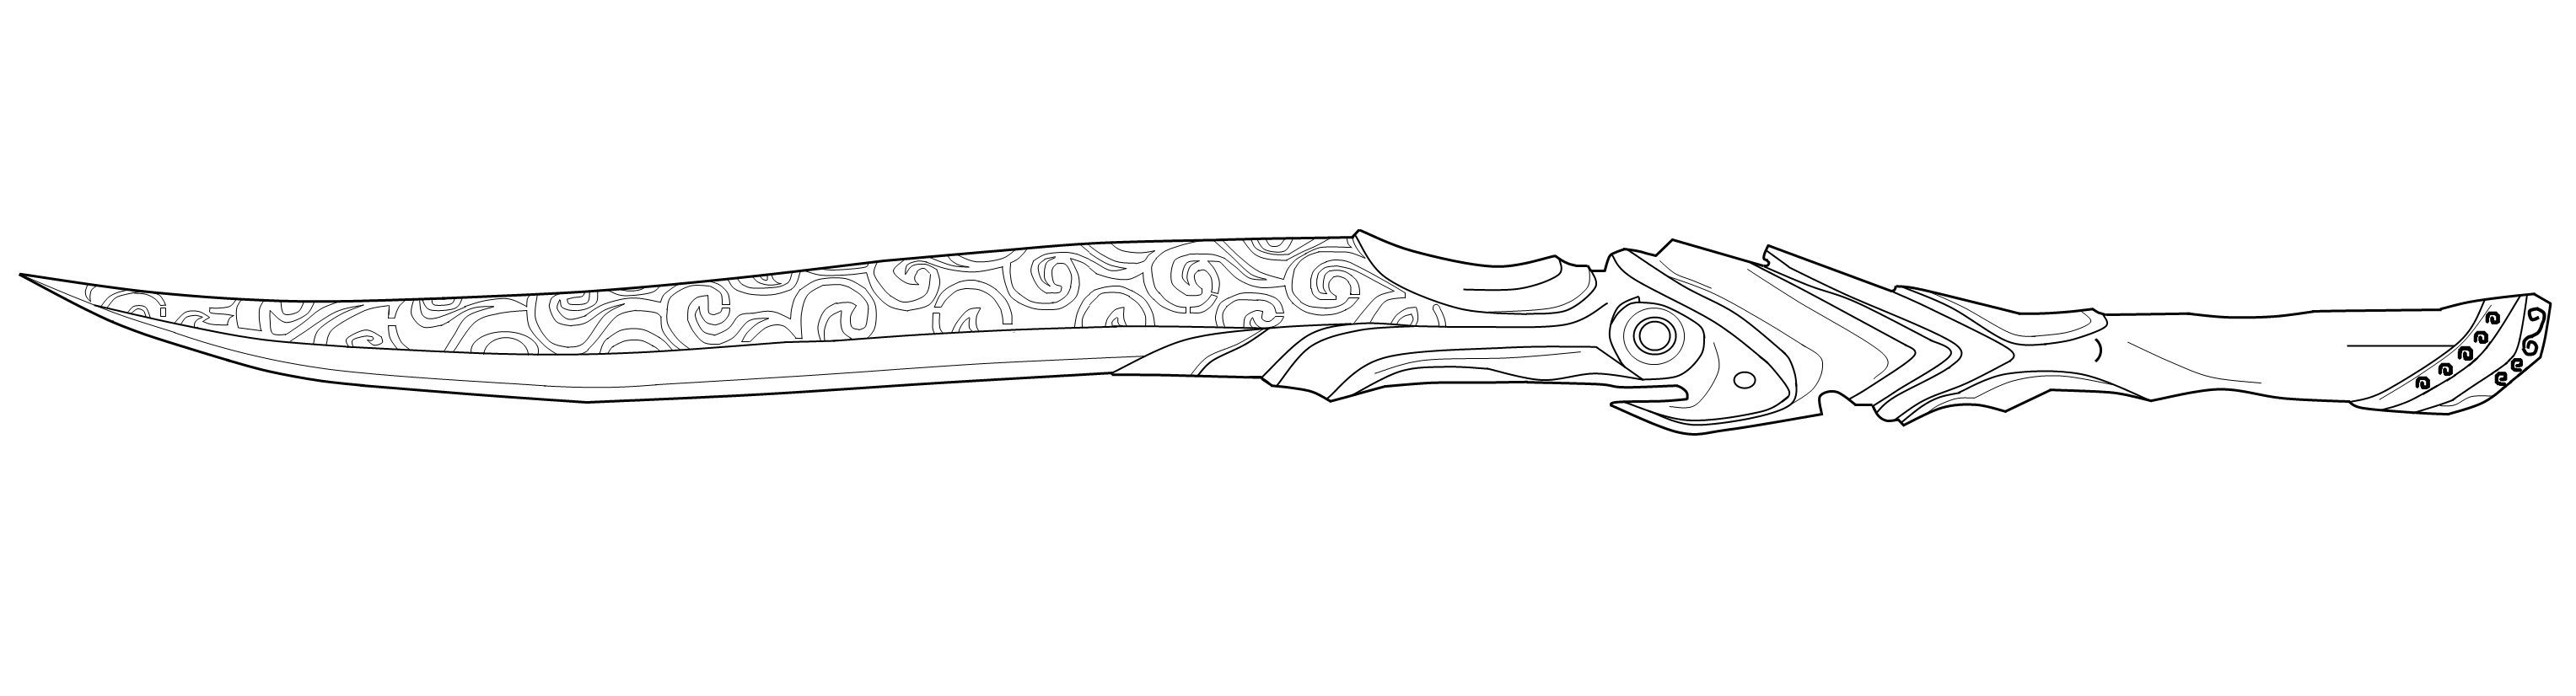 Drawn weapon skyrim By Ebony 59 andrewbig 6